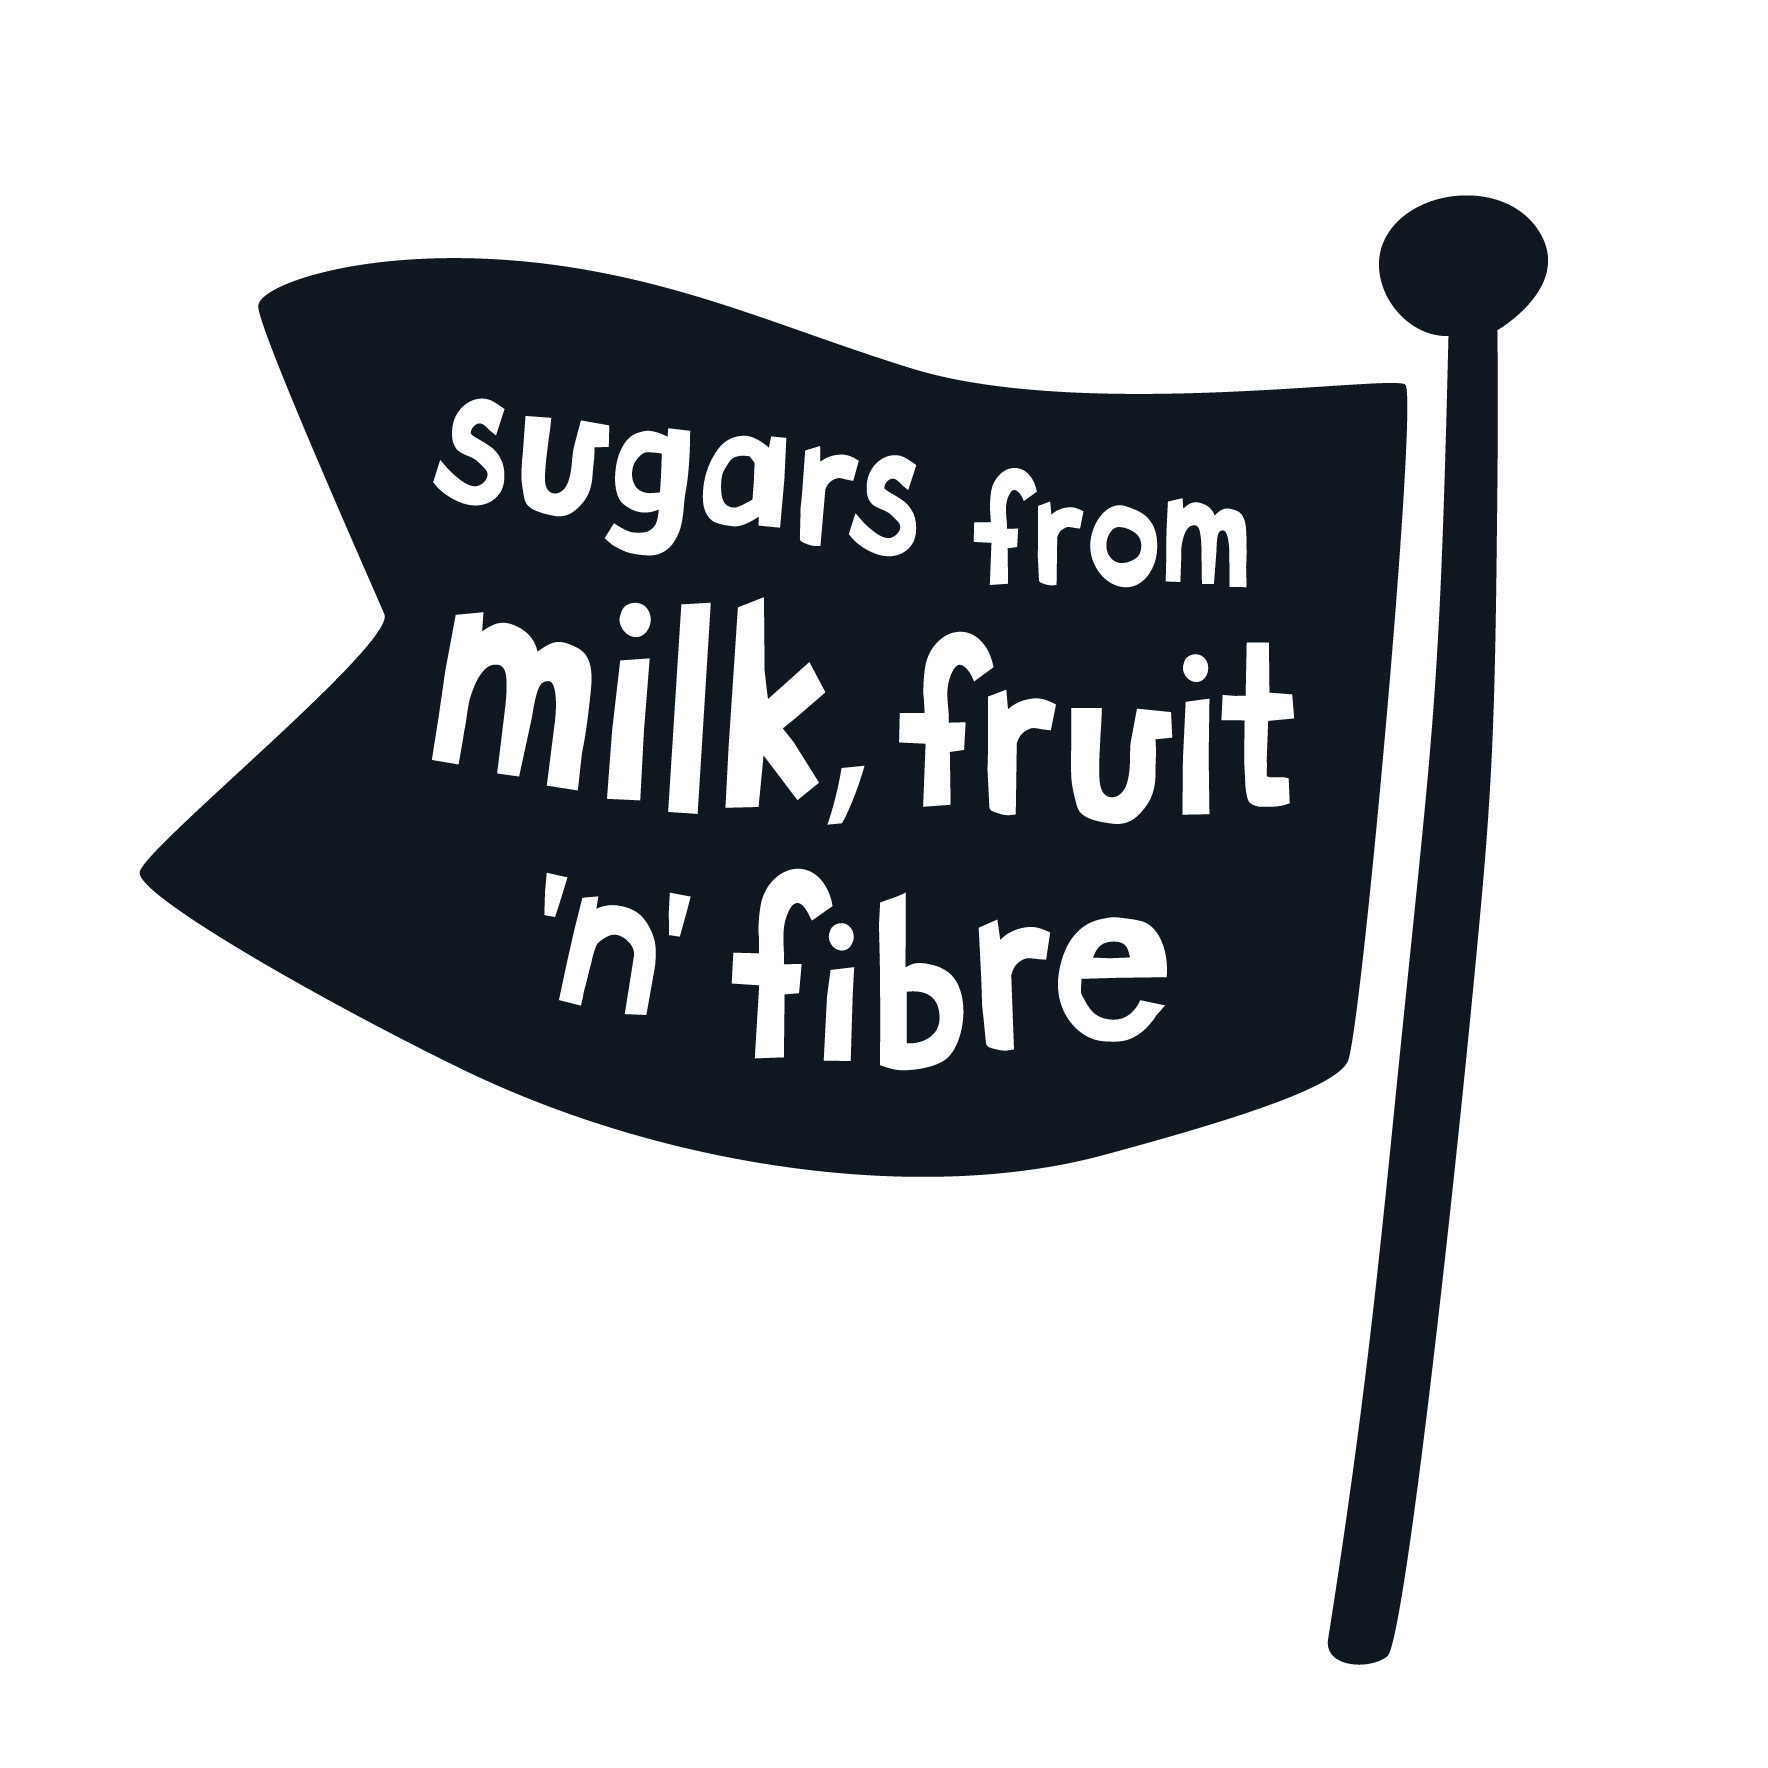 sugars from milk, fruit 'n' fibre